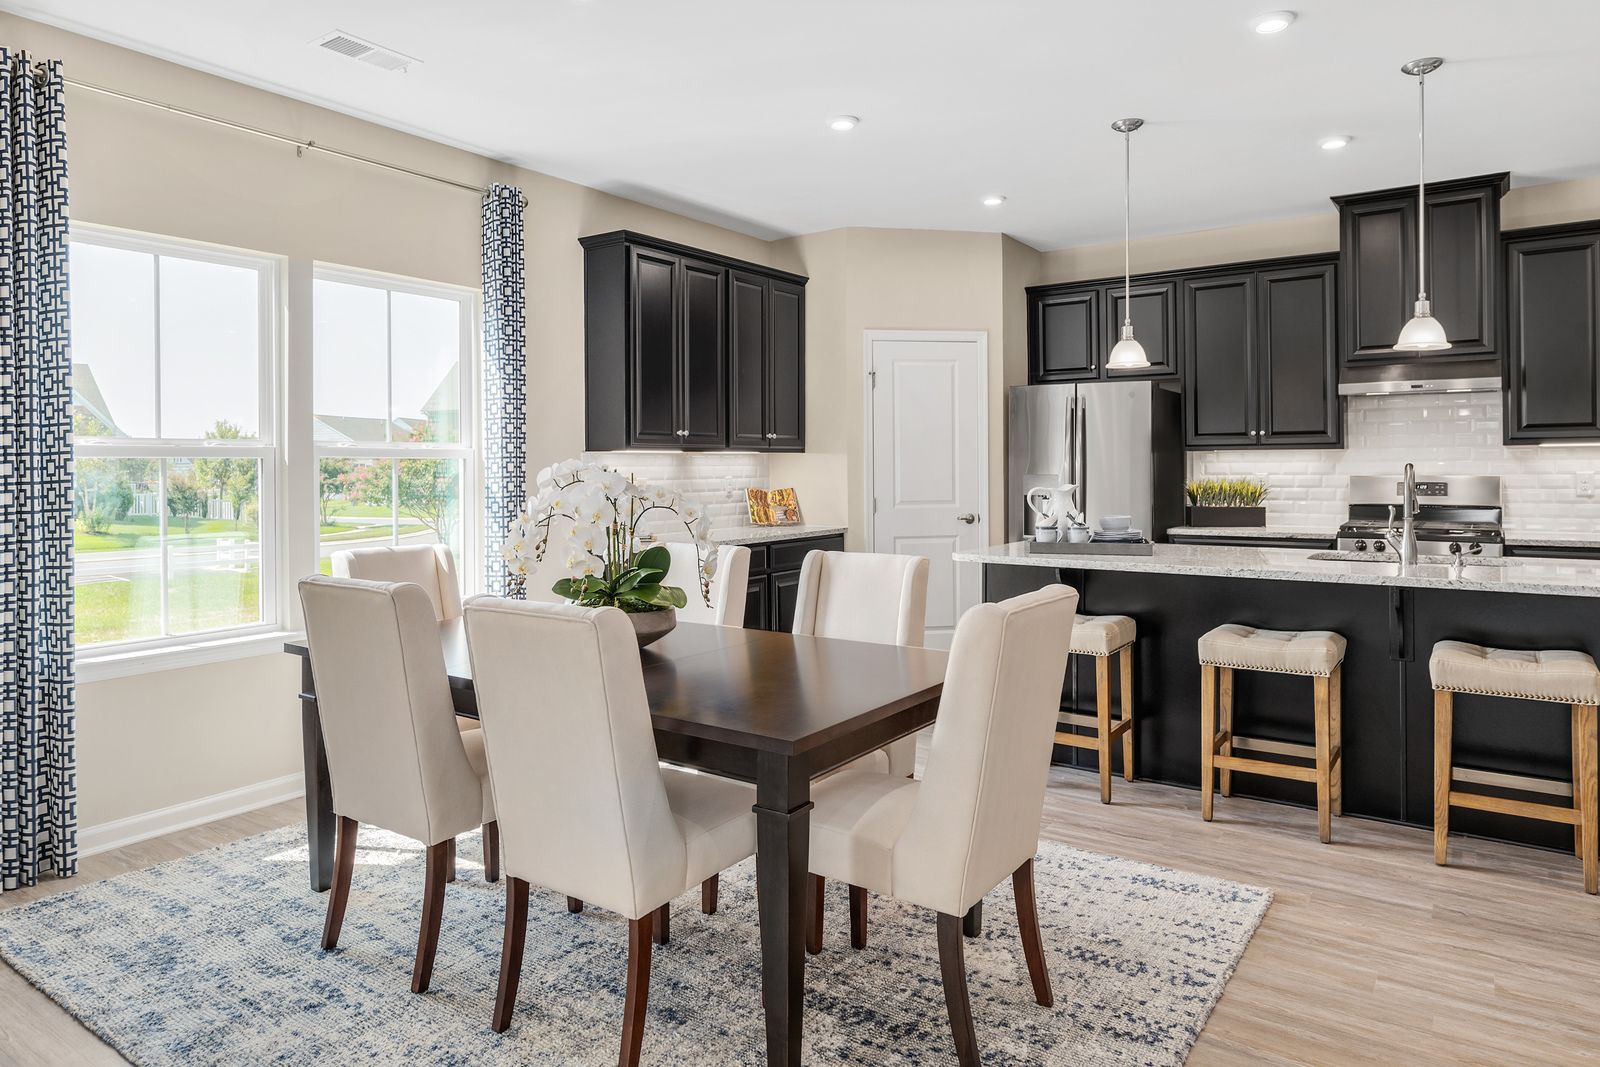 Kitchen featured in the Palladio Ranch Slab - Basement Available By Ryan Homes in Chicago, IL